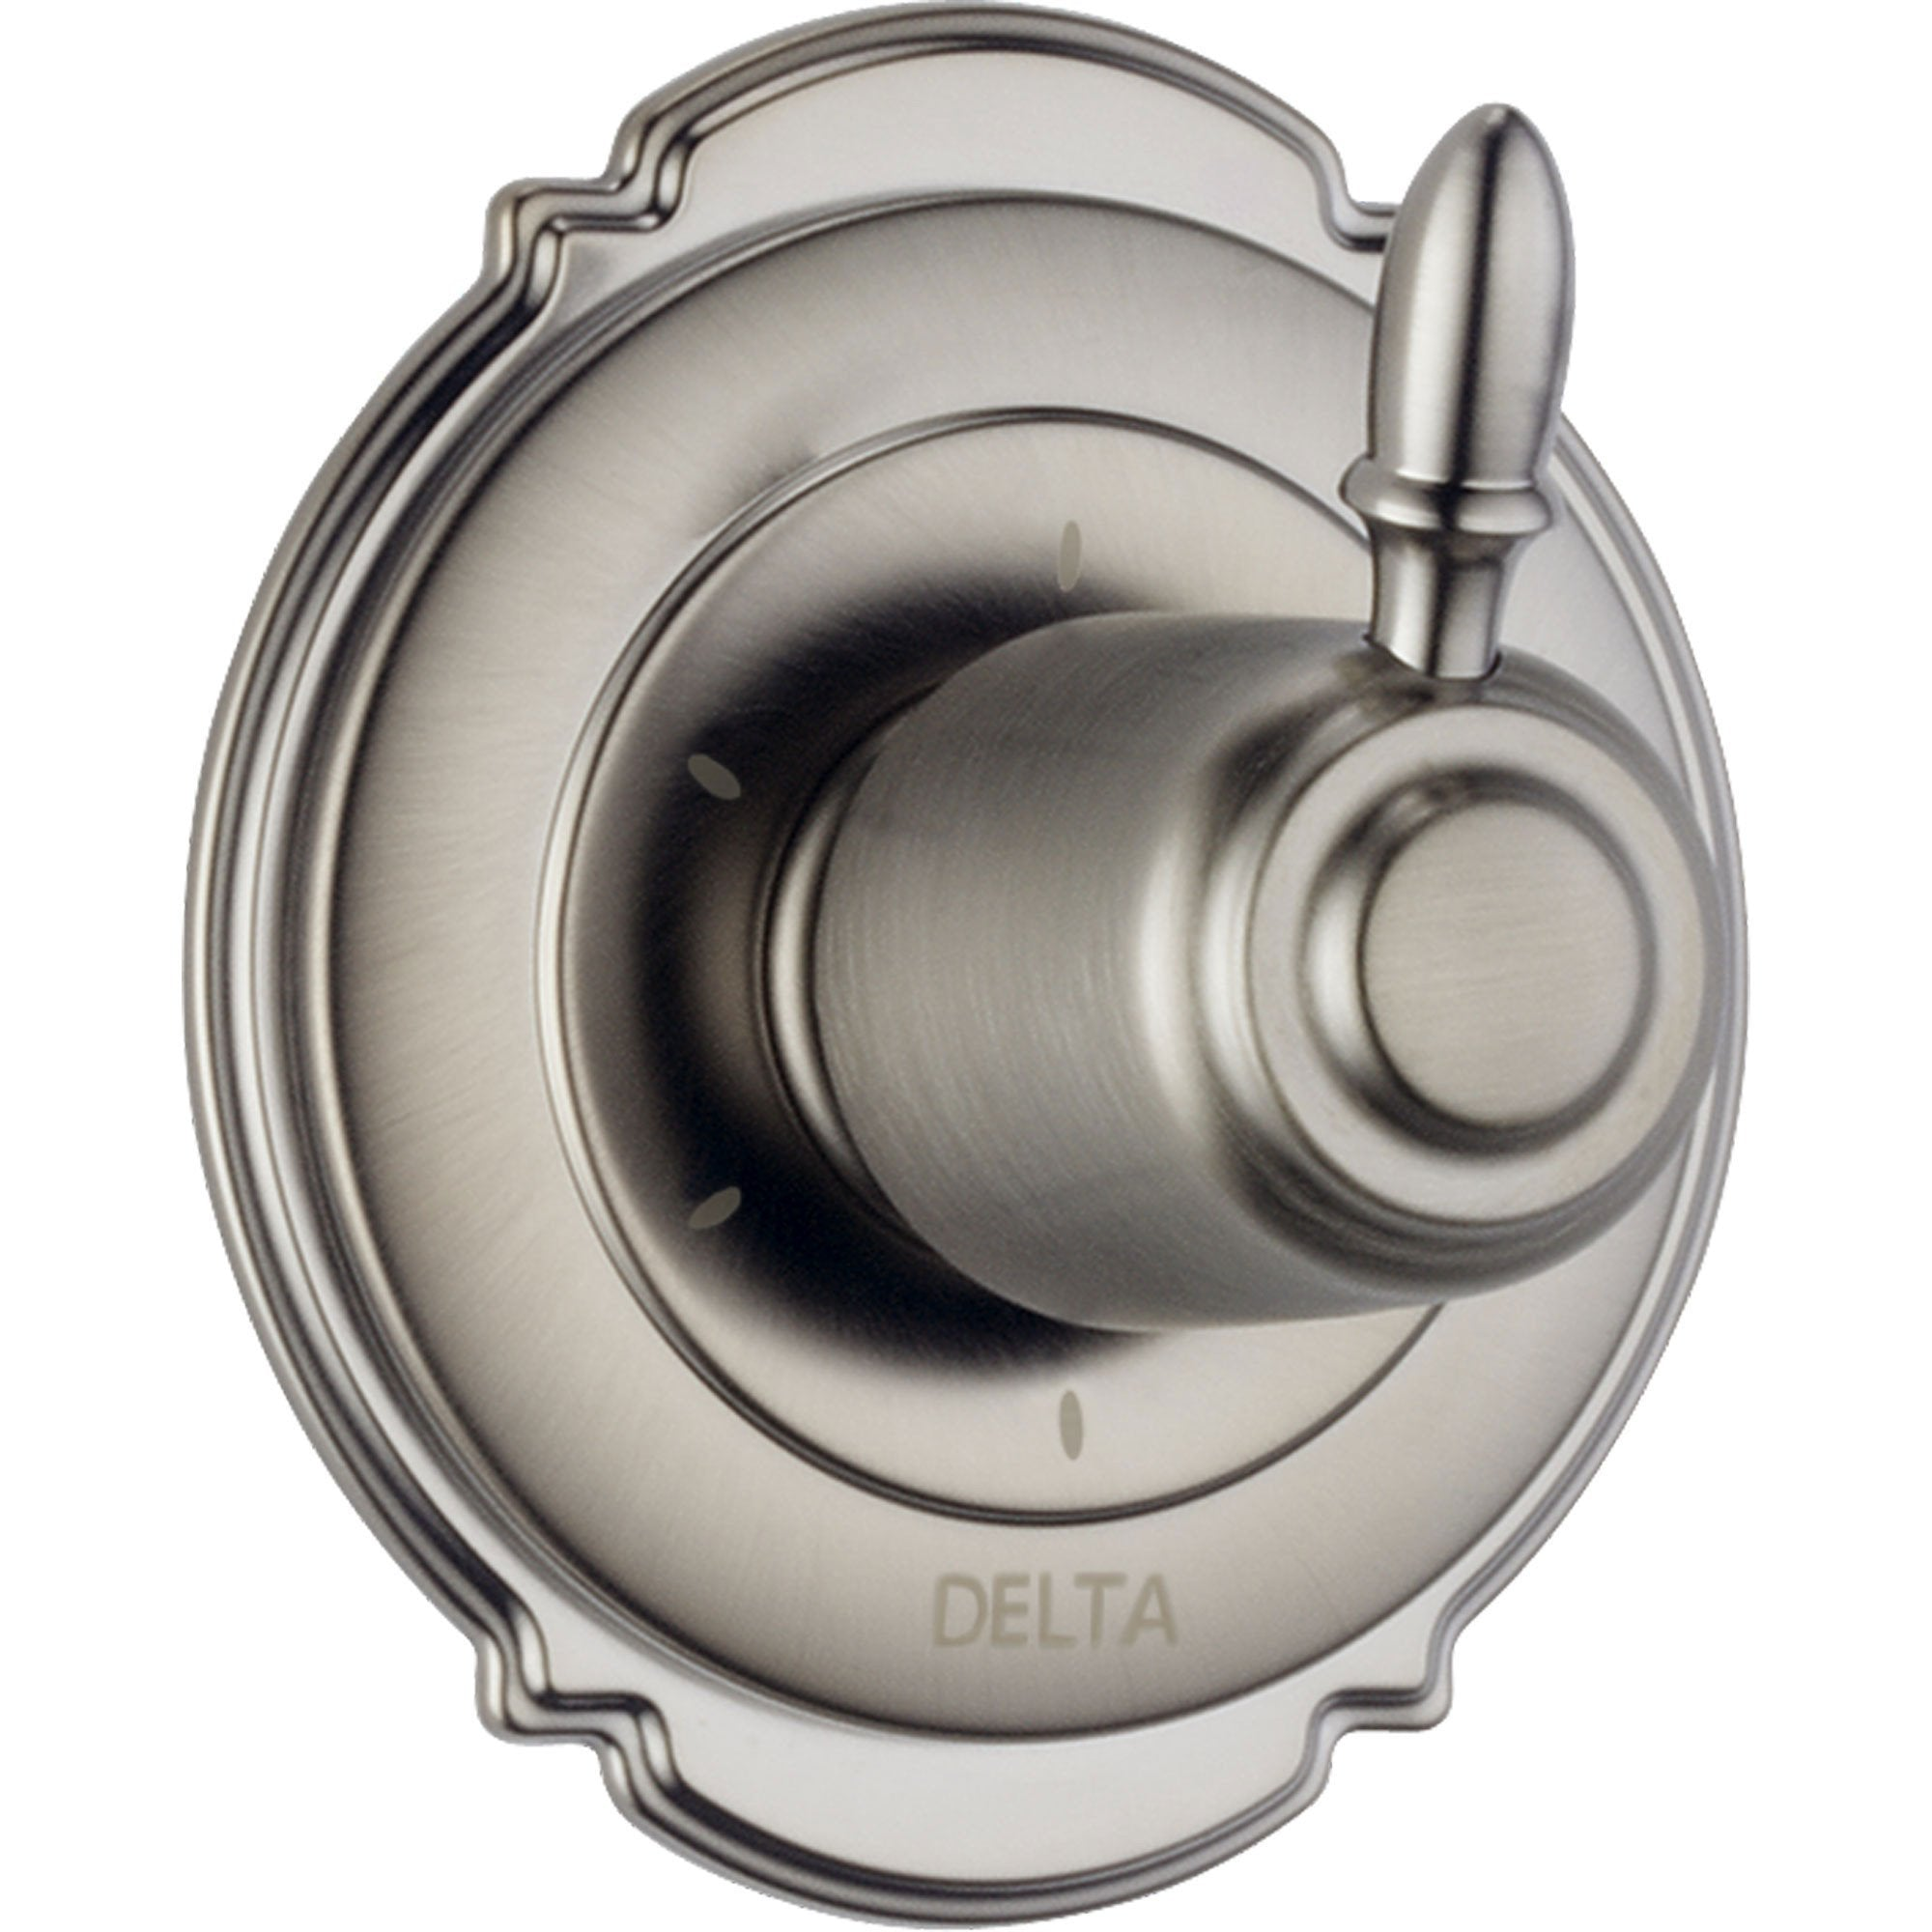 Delta Victorian 6-Setting Stainless Steel Finish Shower Diverter Trim 560990